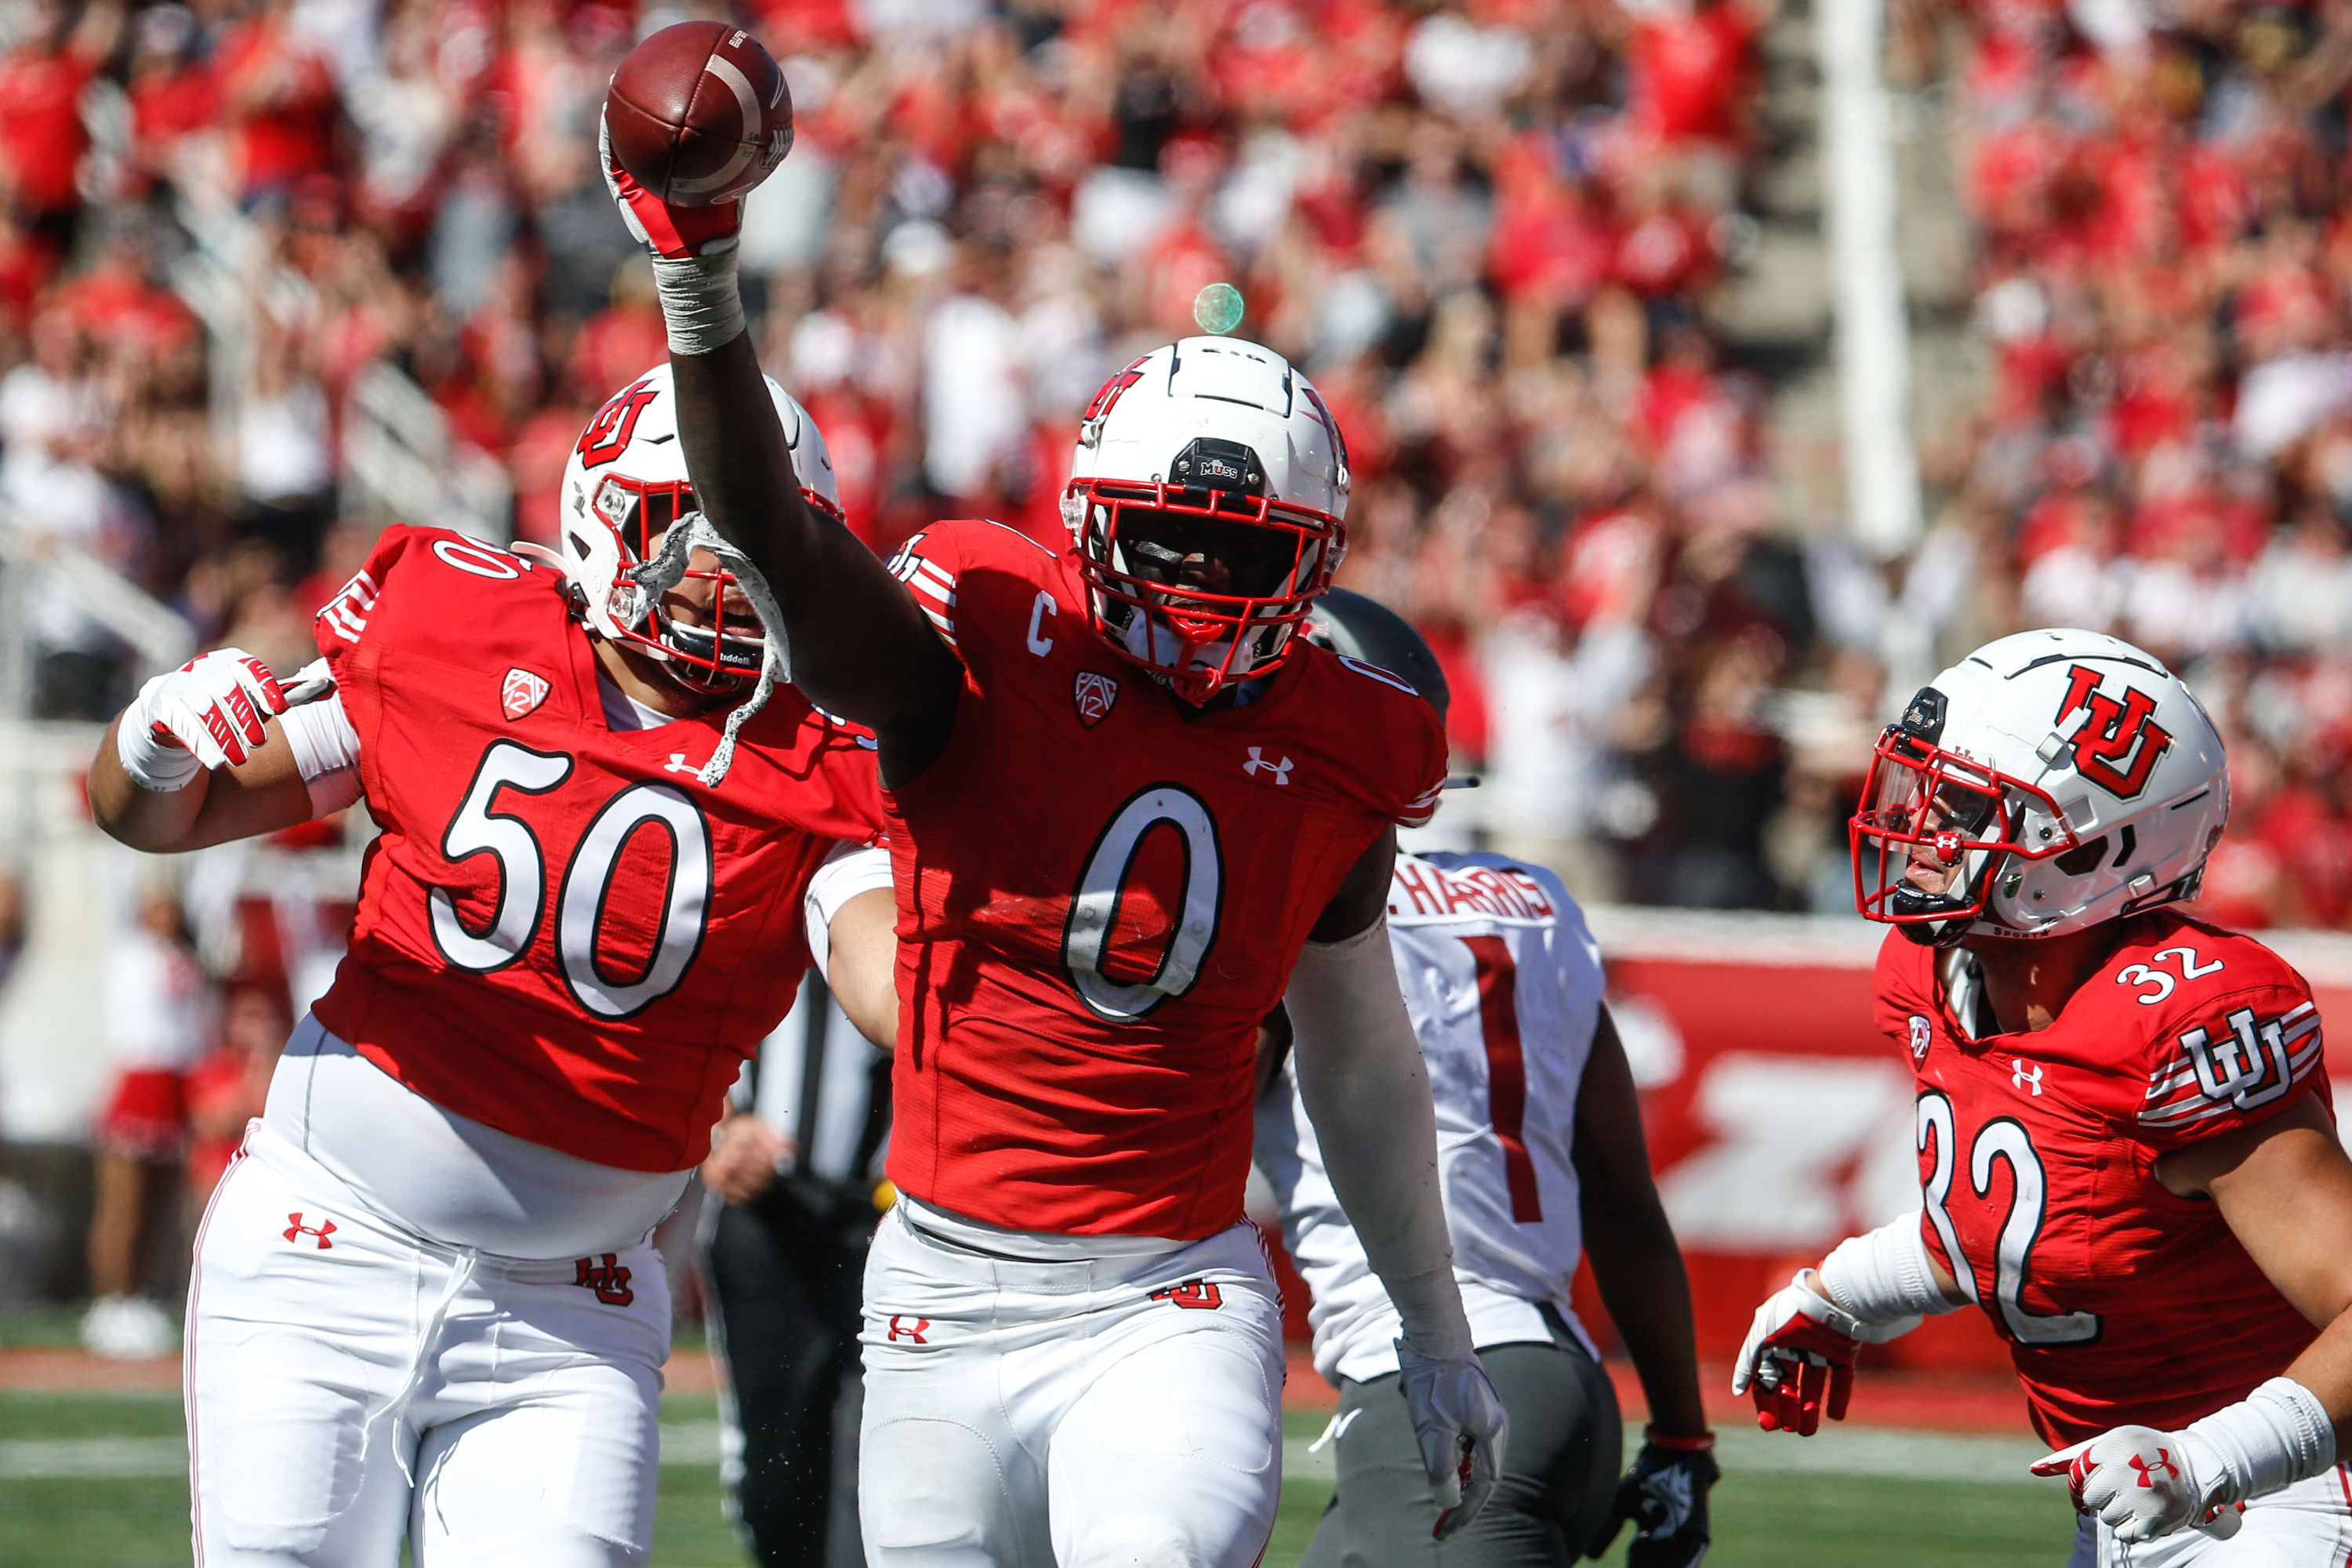 Utah linebacker Devin Lloyd holds the ball and celebrates with his teammates.